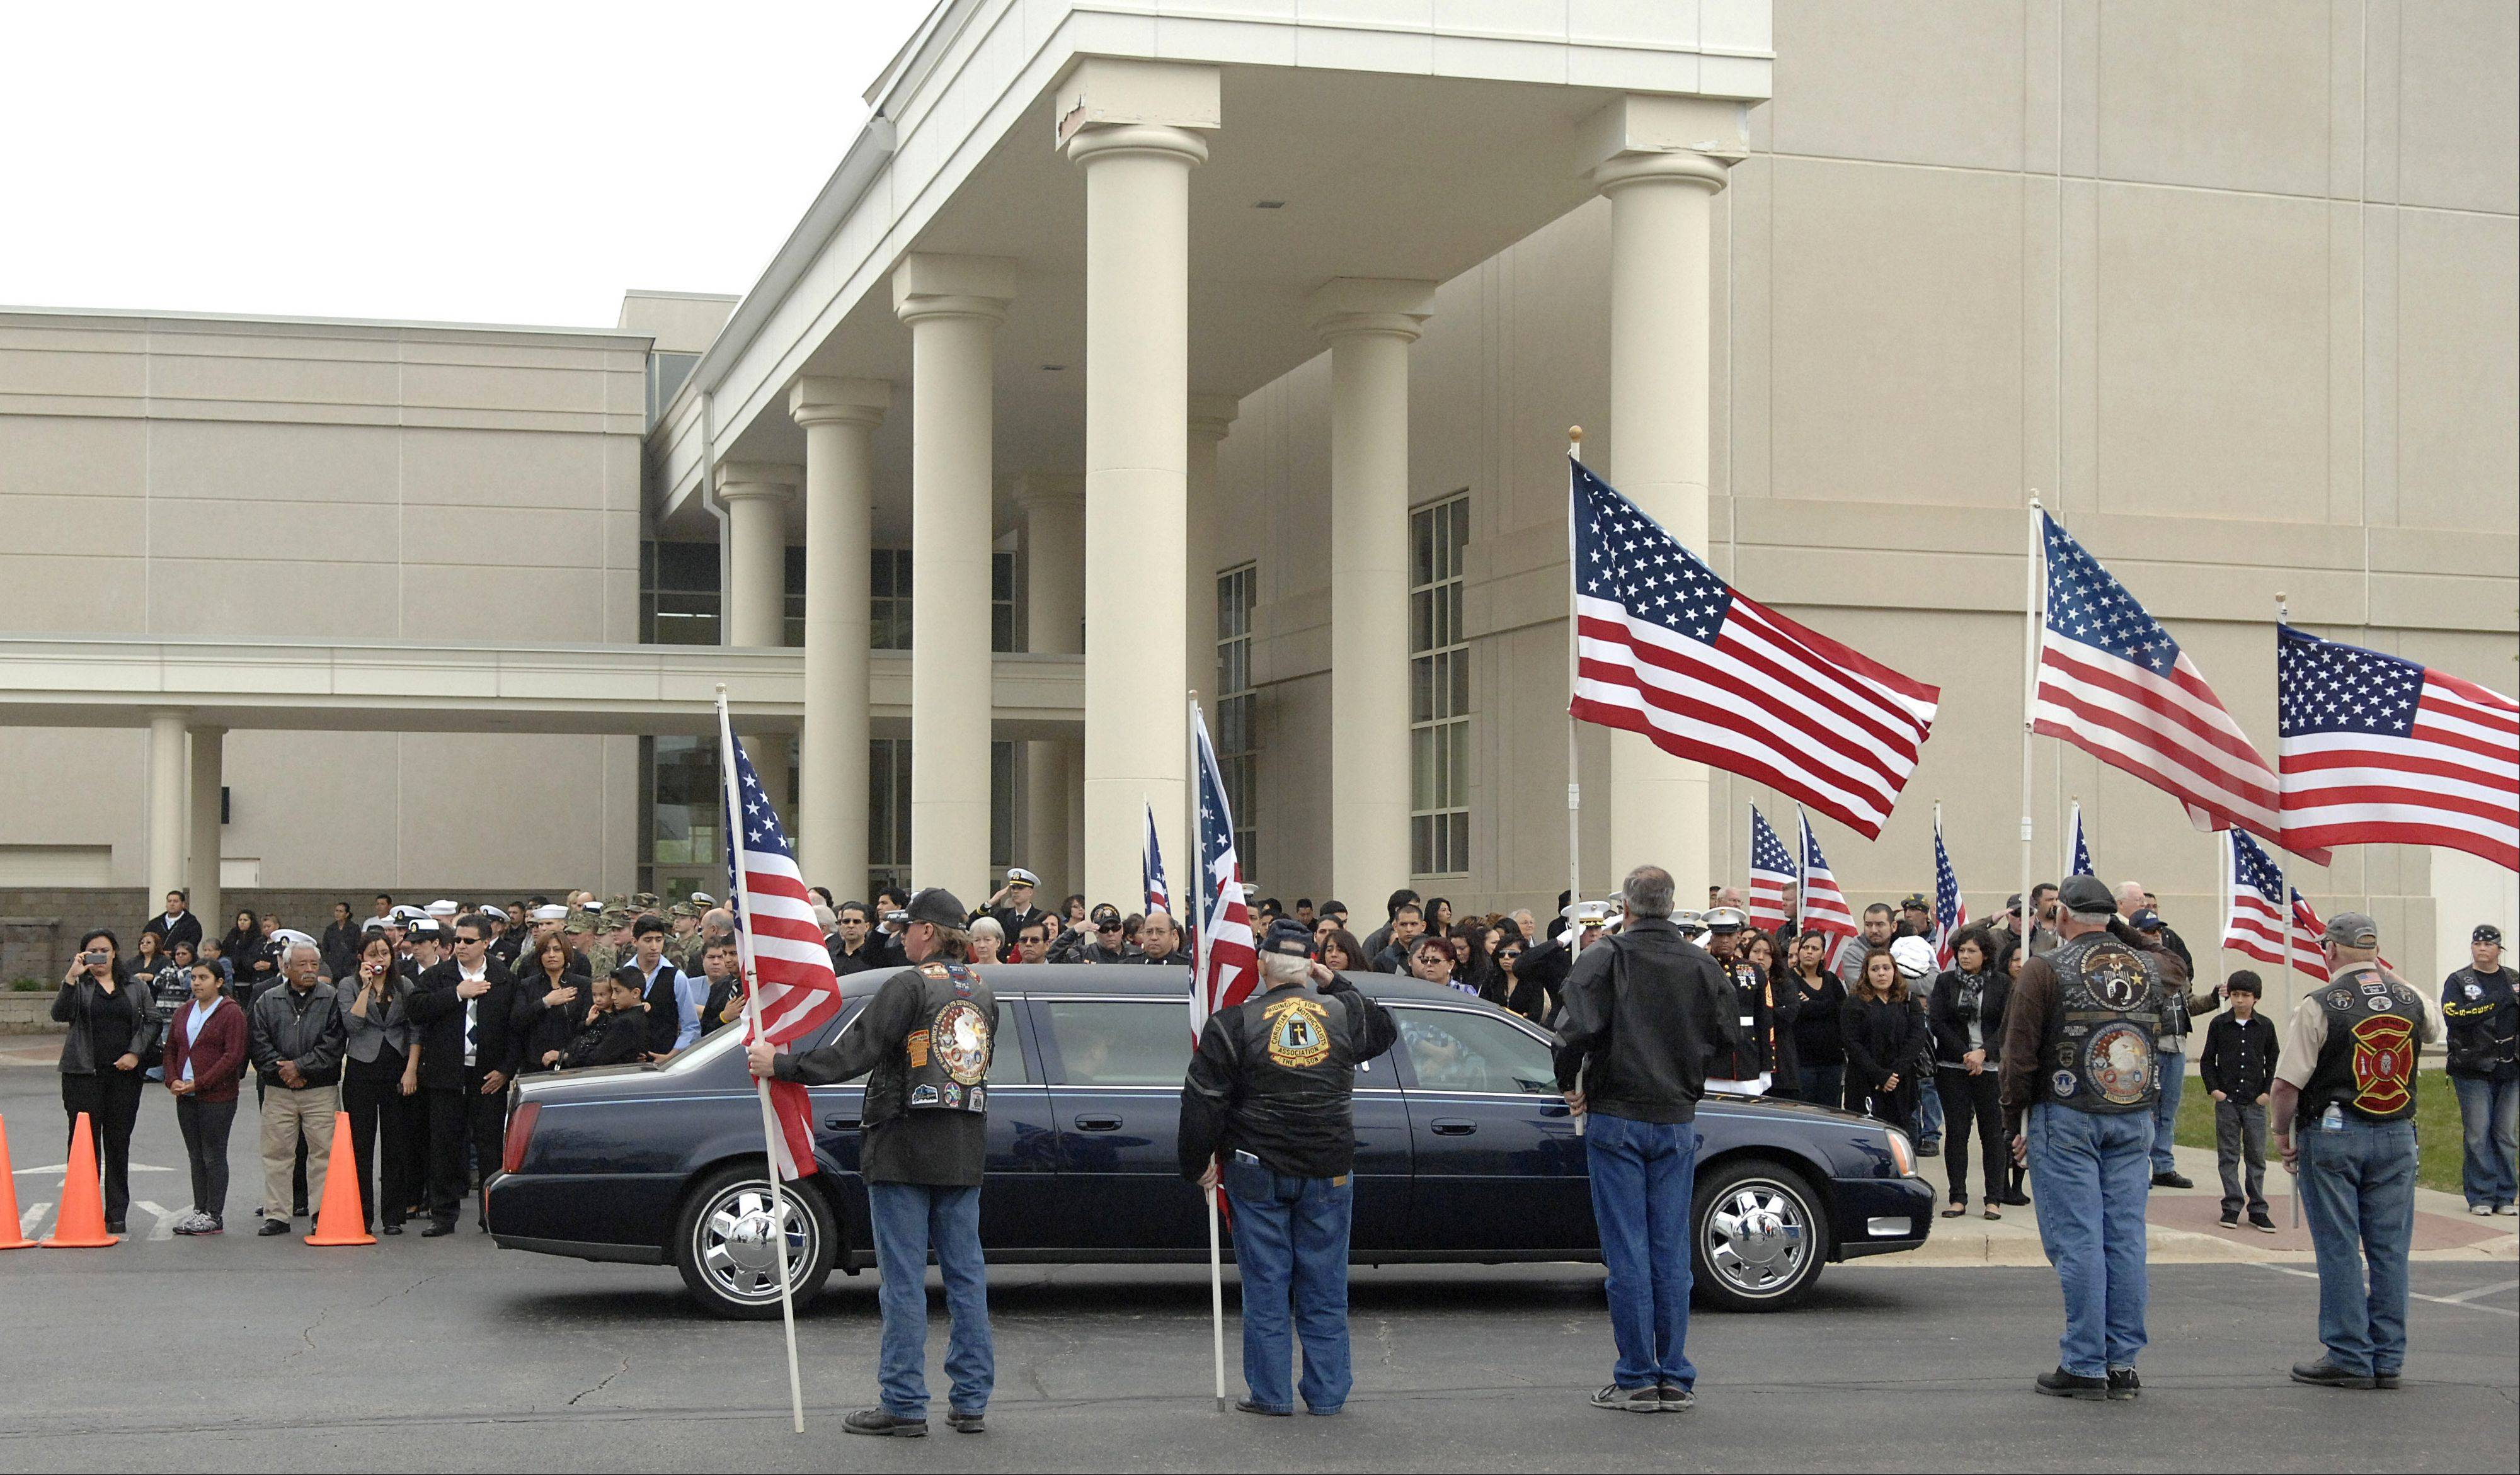 Members of the military, family and friends of Cpl. Alex Martinez salute or place their hands over their hearts as limousines carrying his wife, Julianna, and immediate family drive away following his funeral Saturday at Life Changers International Church in Hoffman Estates.